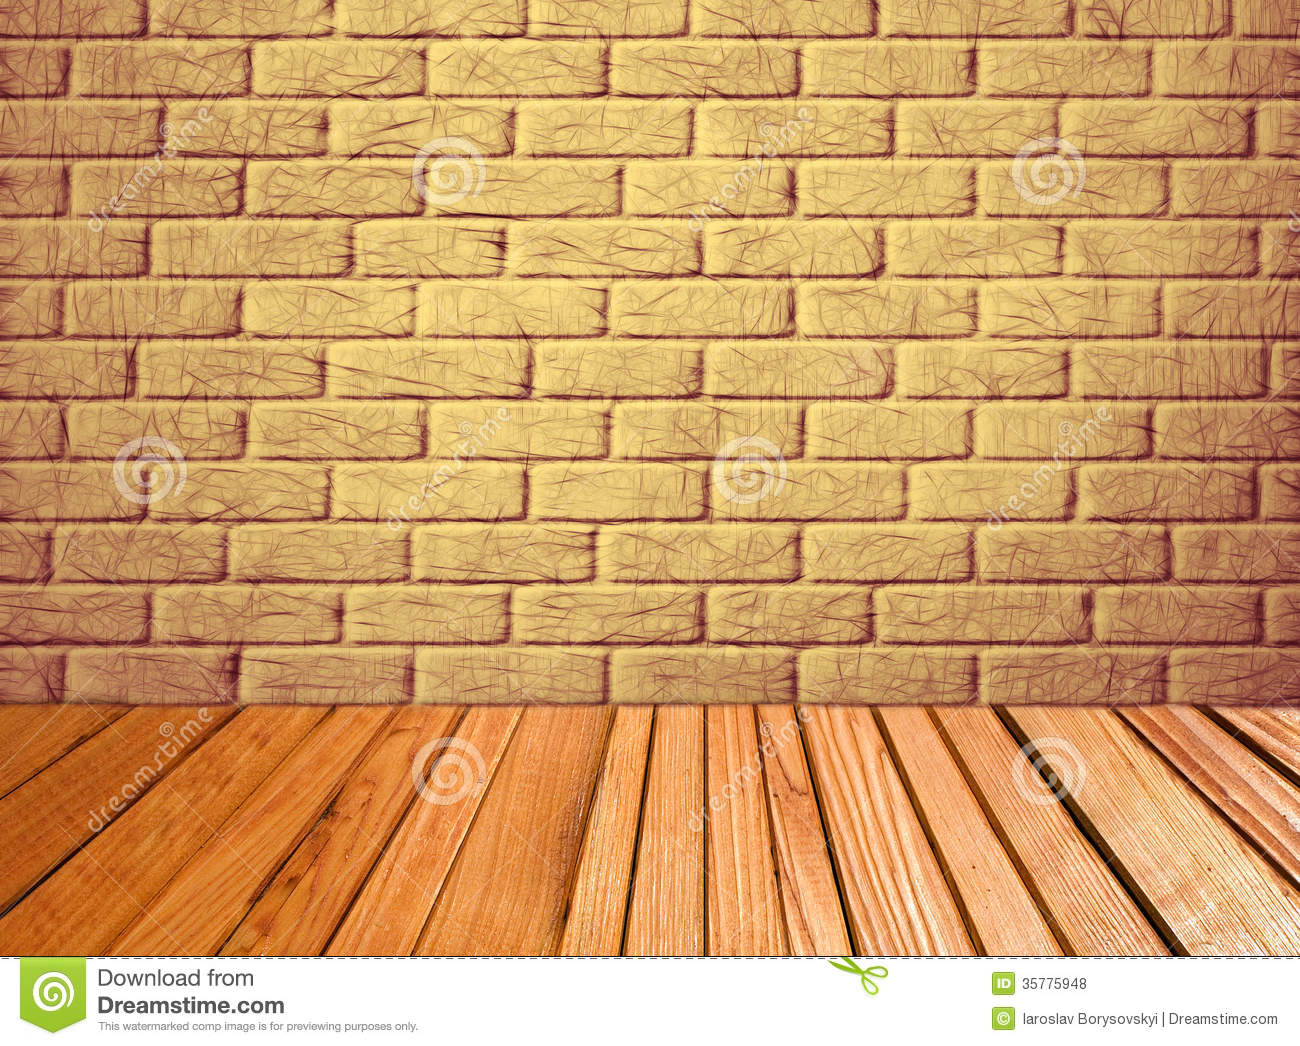 Z Brick Flooring : Indoor background with yellow brick wall and wooden plank